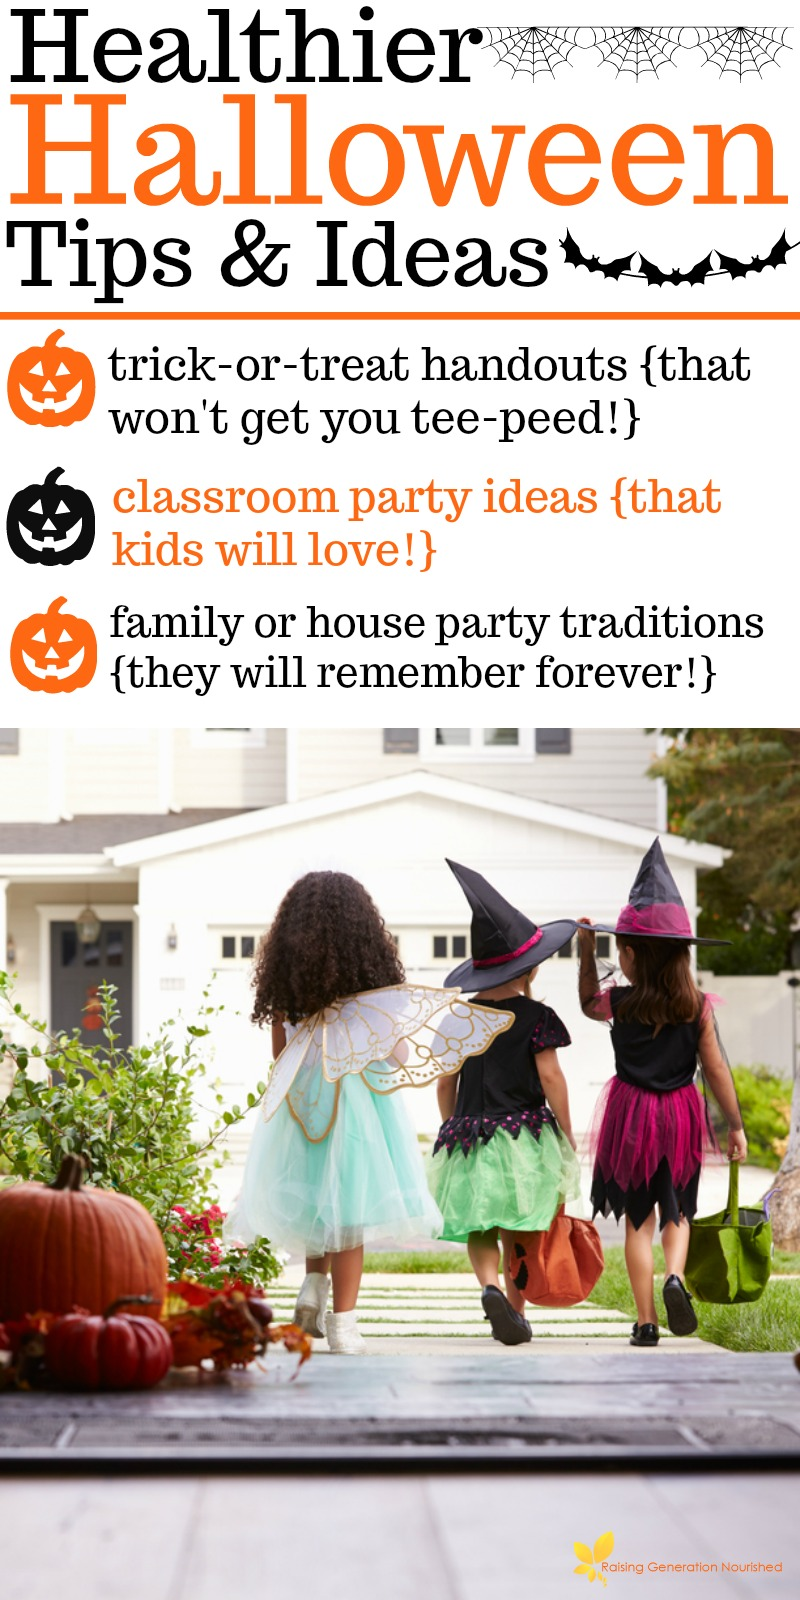 celebrate halloween and keep your crunchy momma status with these super fun not lame healthy halloween tips and ideas for home and school